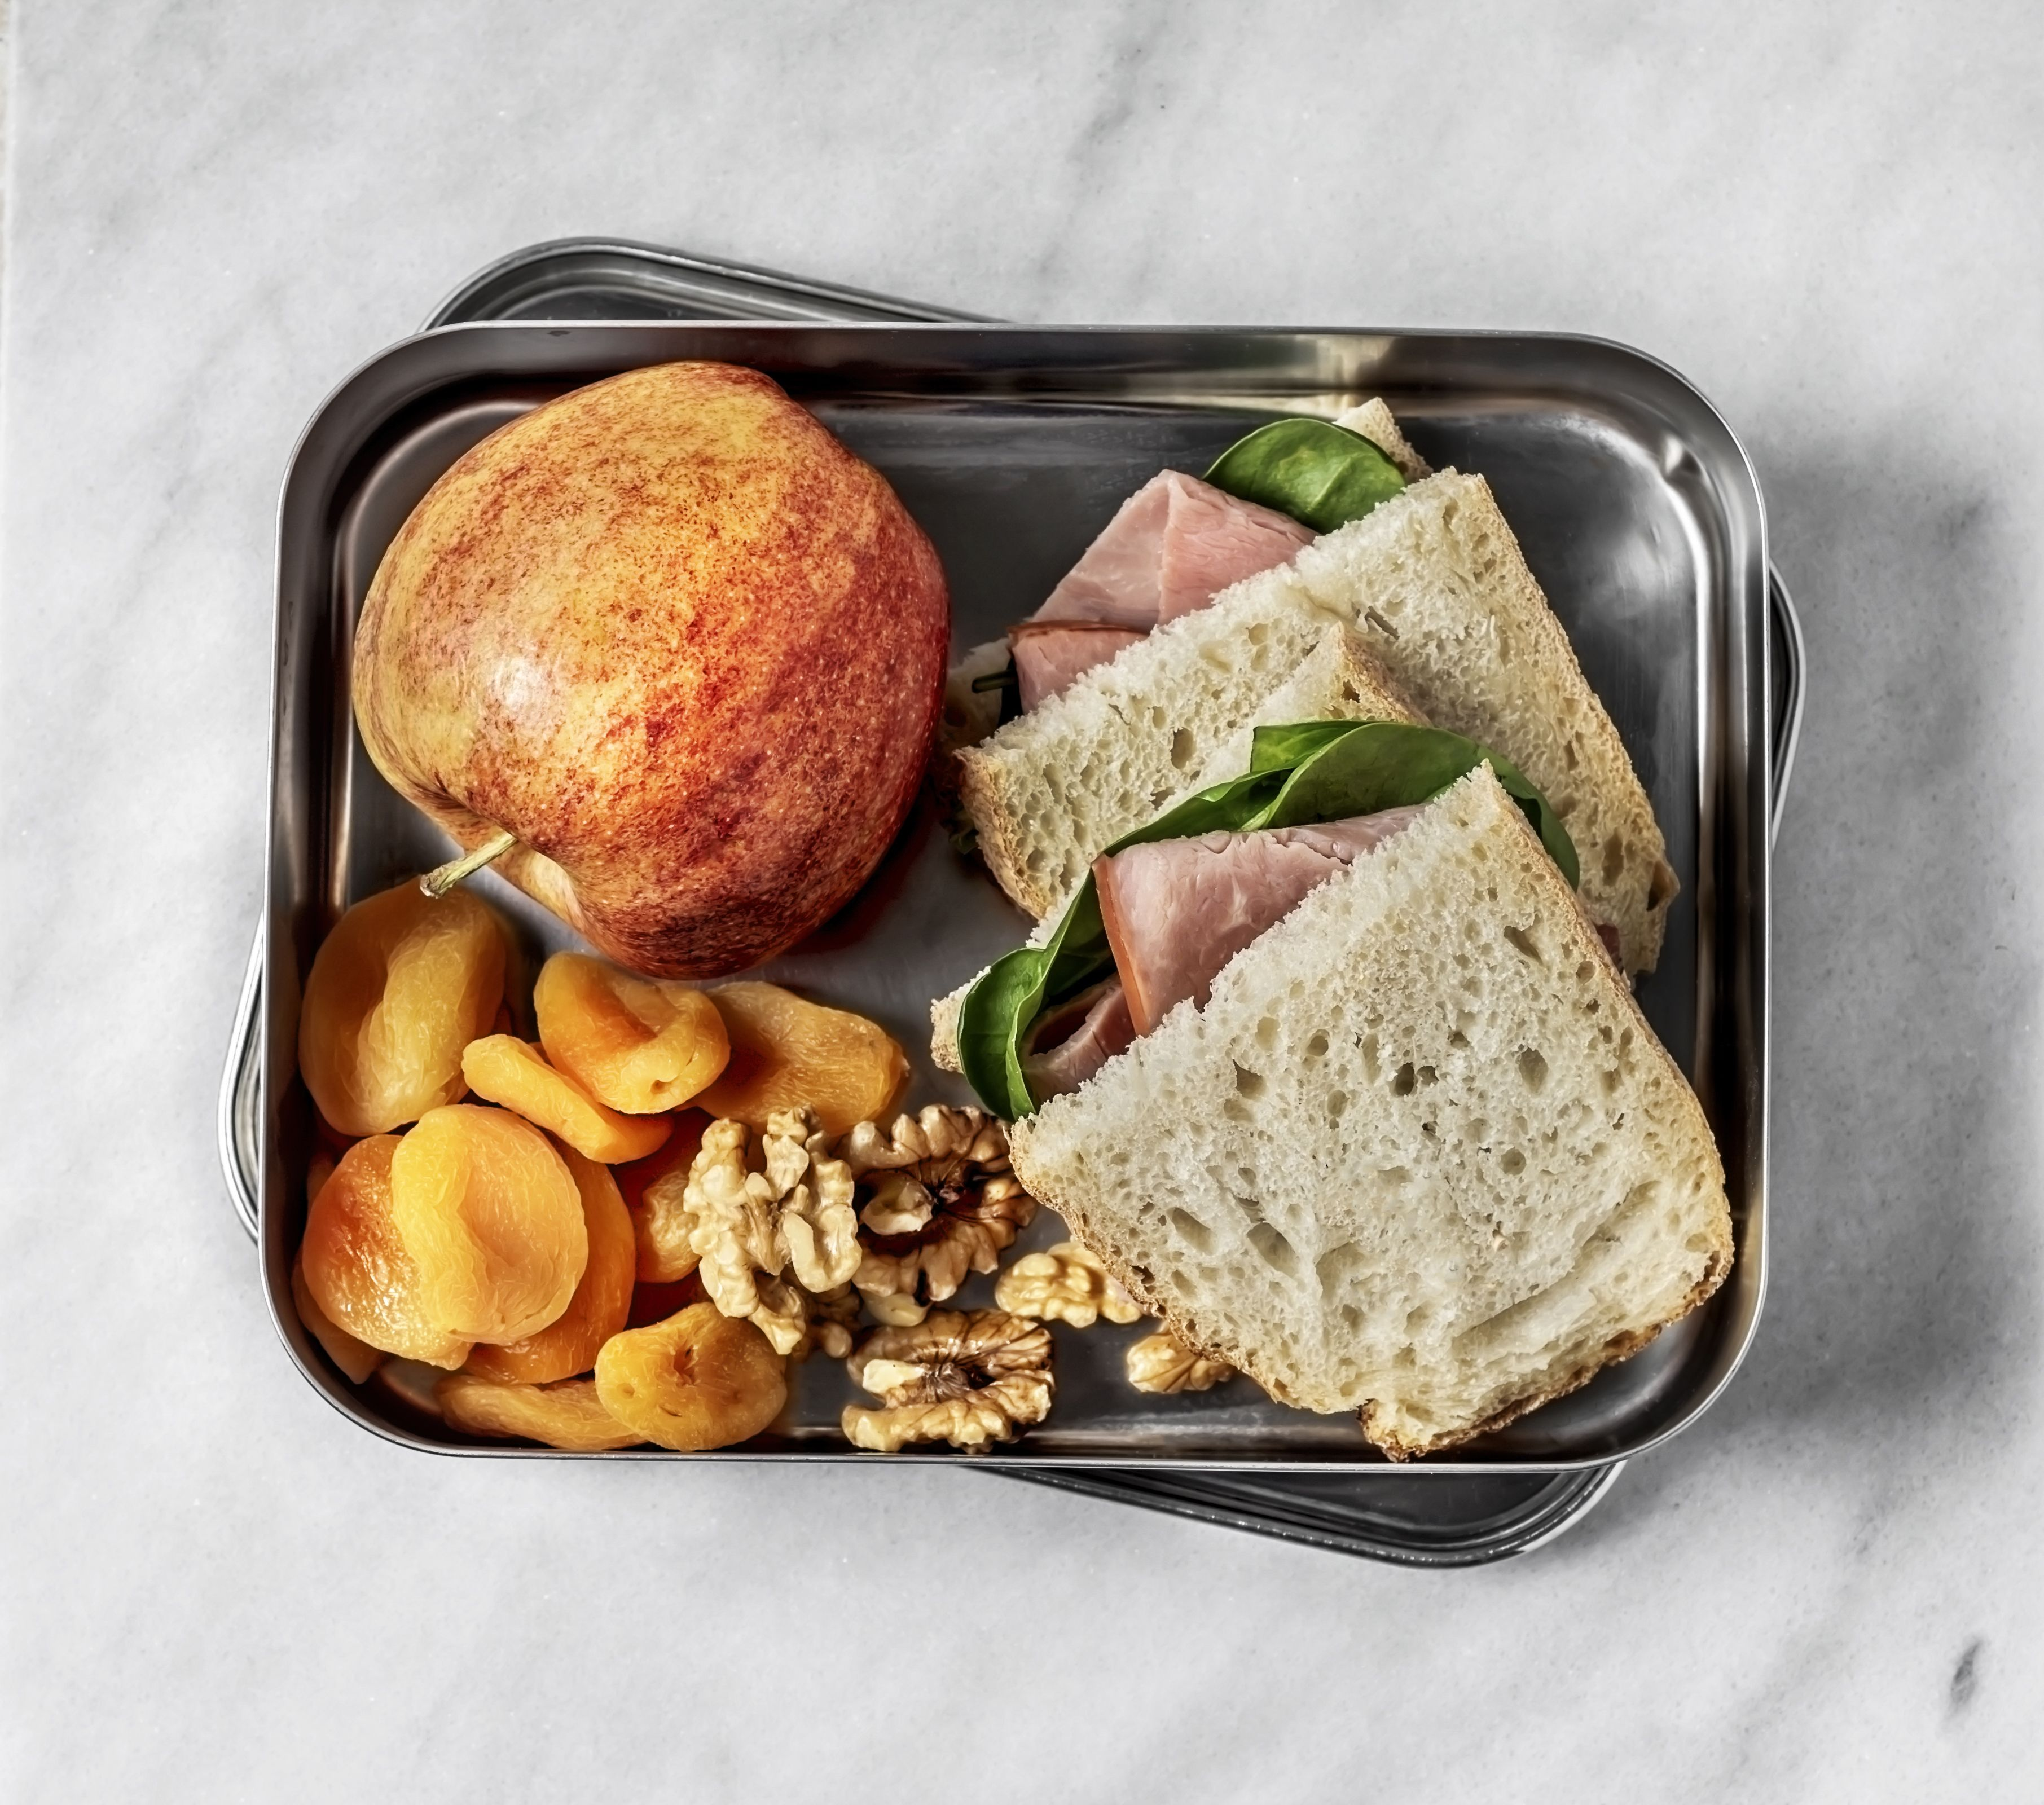 Healthiest Sandwich: Here's How to Build a Nutrient-Packed Butty for Work